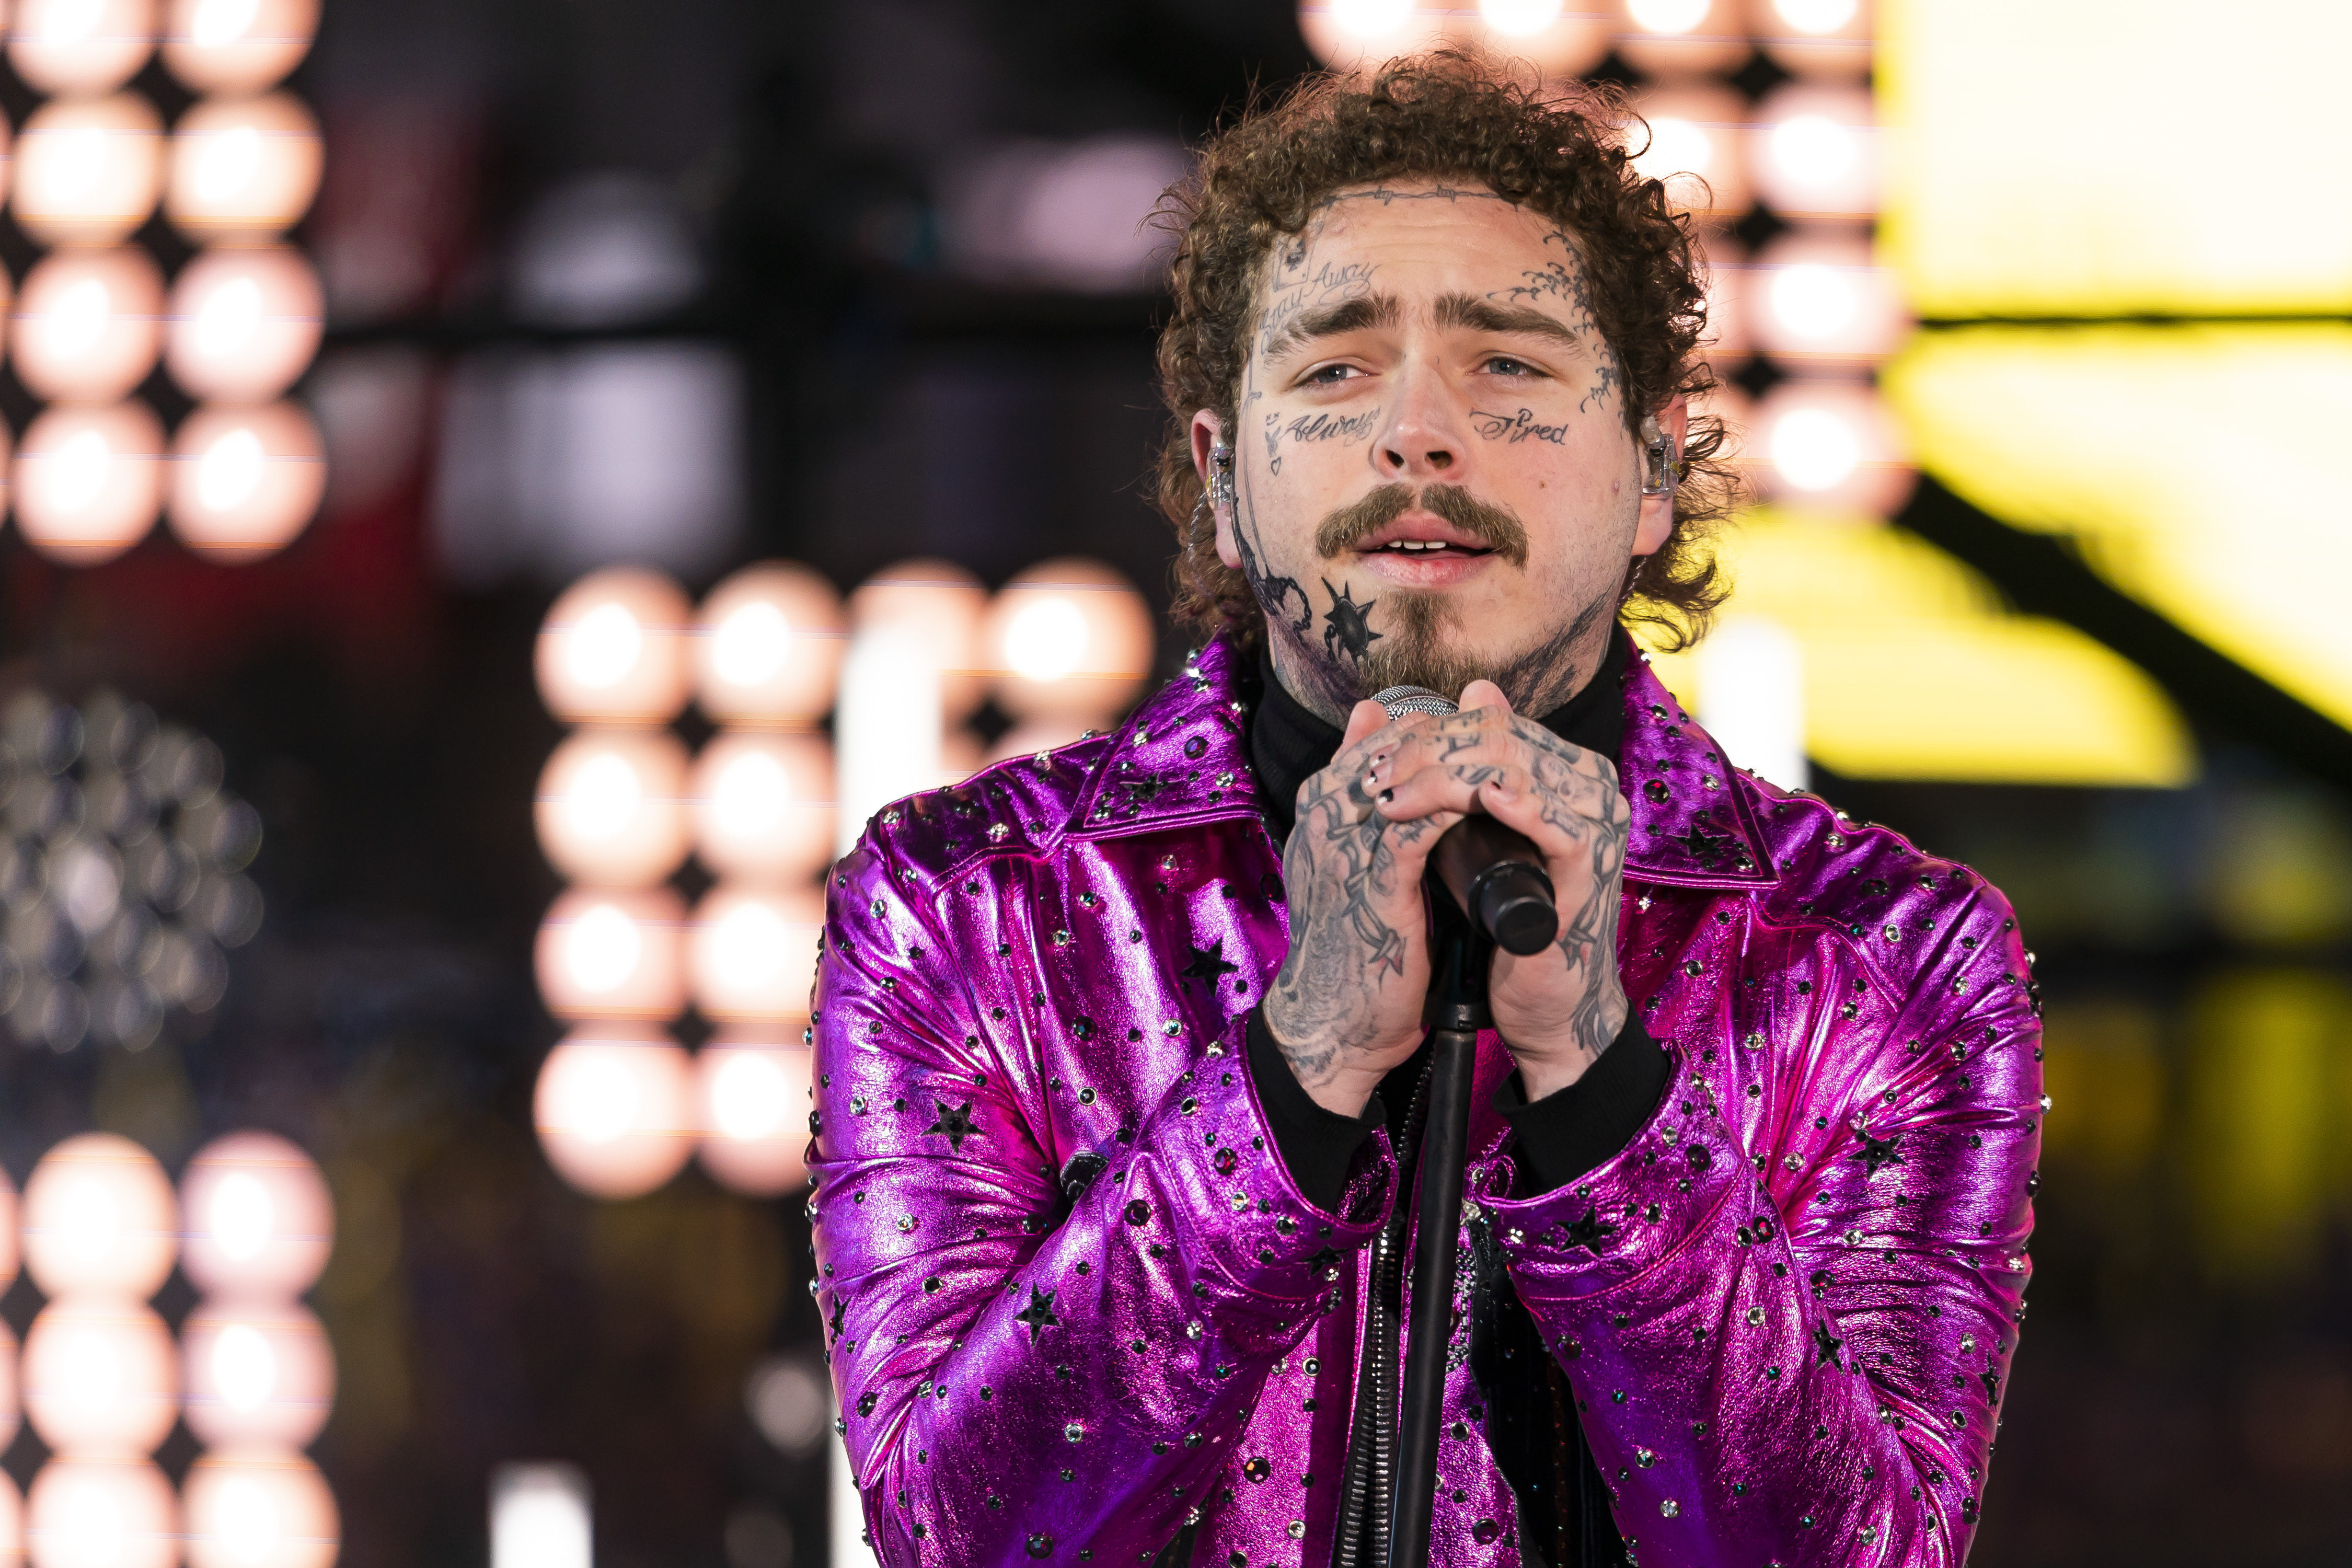 This Tuesday, Dec. 31, 2019, file photo shows Post Malone performing at the Times Square New Year's Eve celebration in New York. Post Malone is the sunflower of the 2020 Billboard Music Awards. The multi-platinum 25-year-old star scored 16 nominations, dick clark productions and NBC announced Tuesday, Sept. 22, 2020. Malone's nominations include top artist, top male artist, top rap artist and top streaming songs artist.